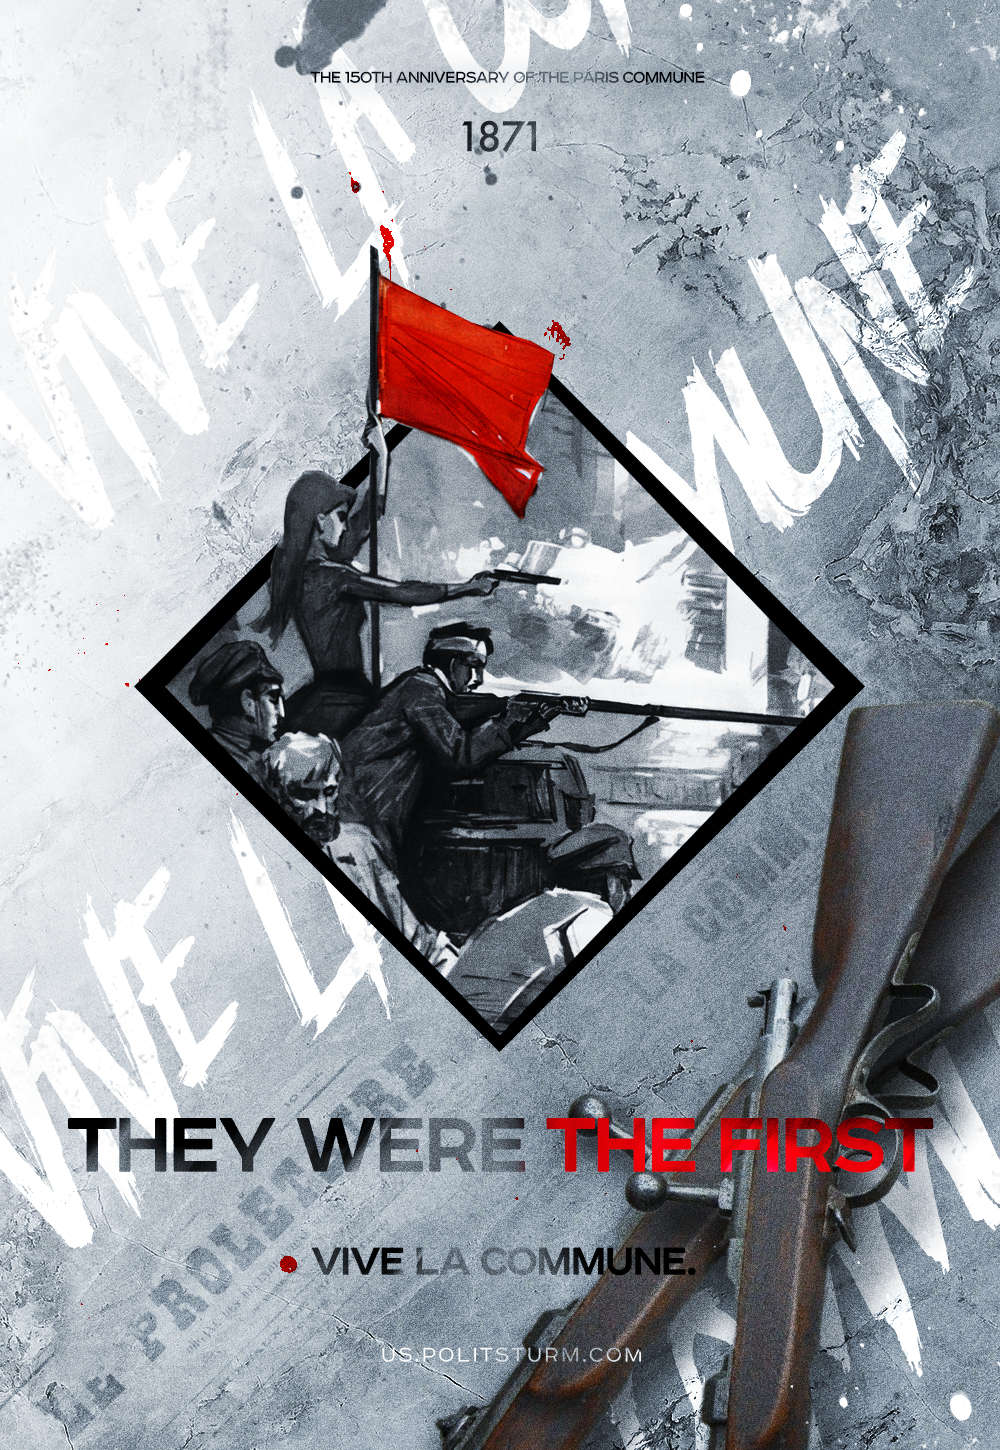 The 150th Anniversary of the Paris Commune